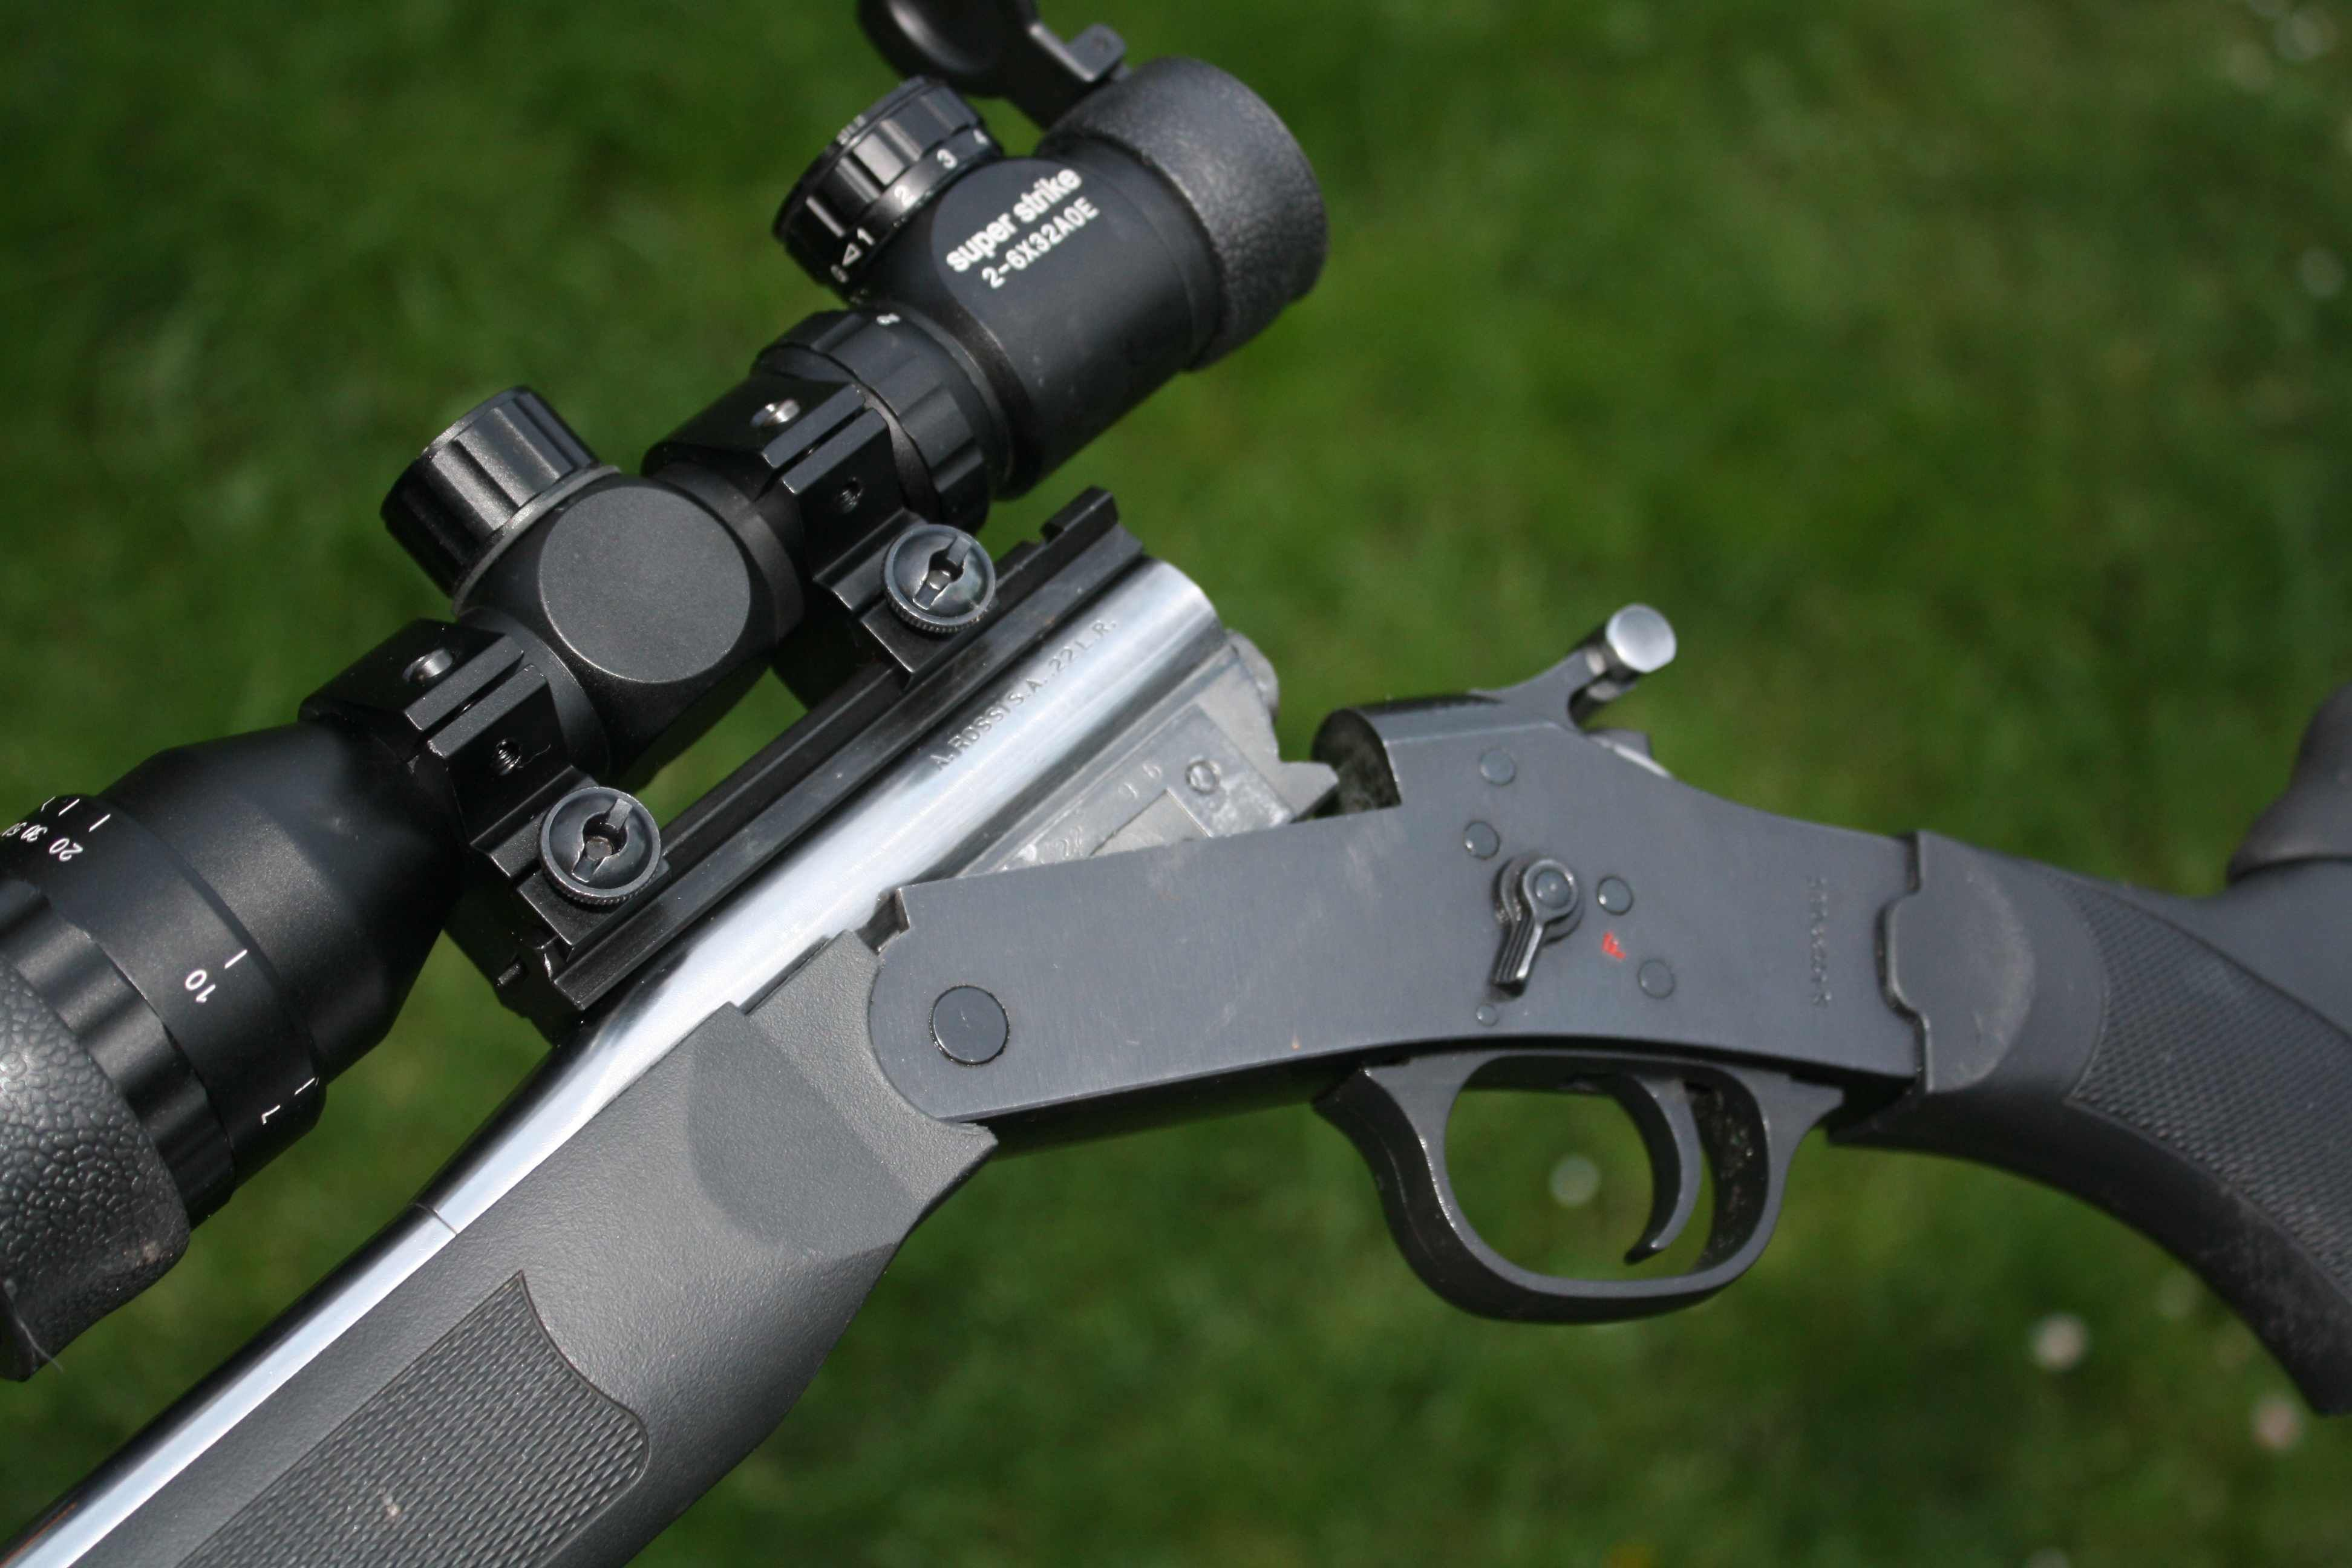 Rossi 410 Shotgun 22 Rifle Combo Learn how to survive any situation at dansdepot.com